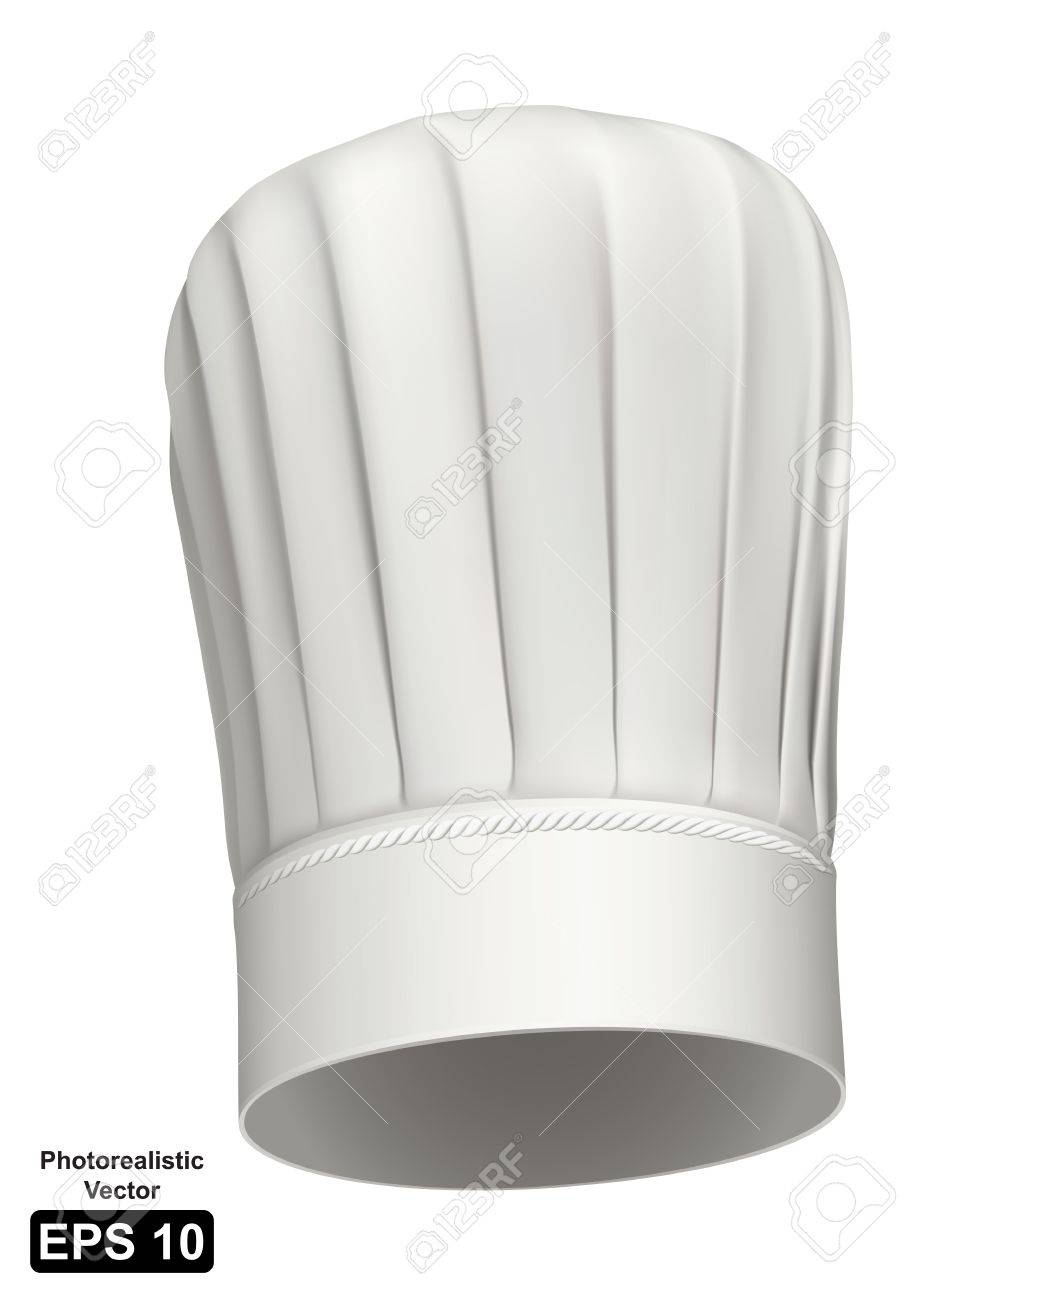 Photorealistic of a white tall chef hat on white background Stock Vector - 13976967